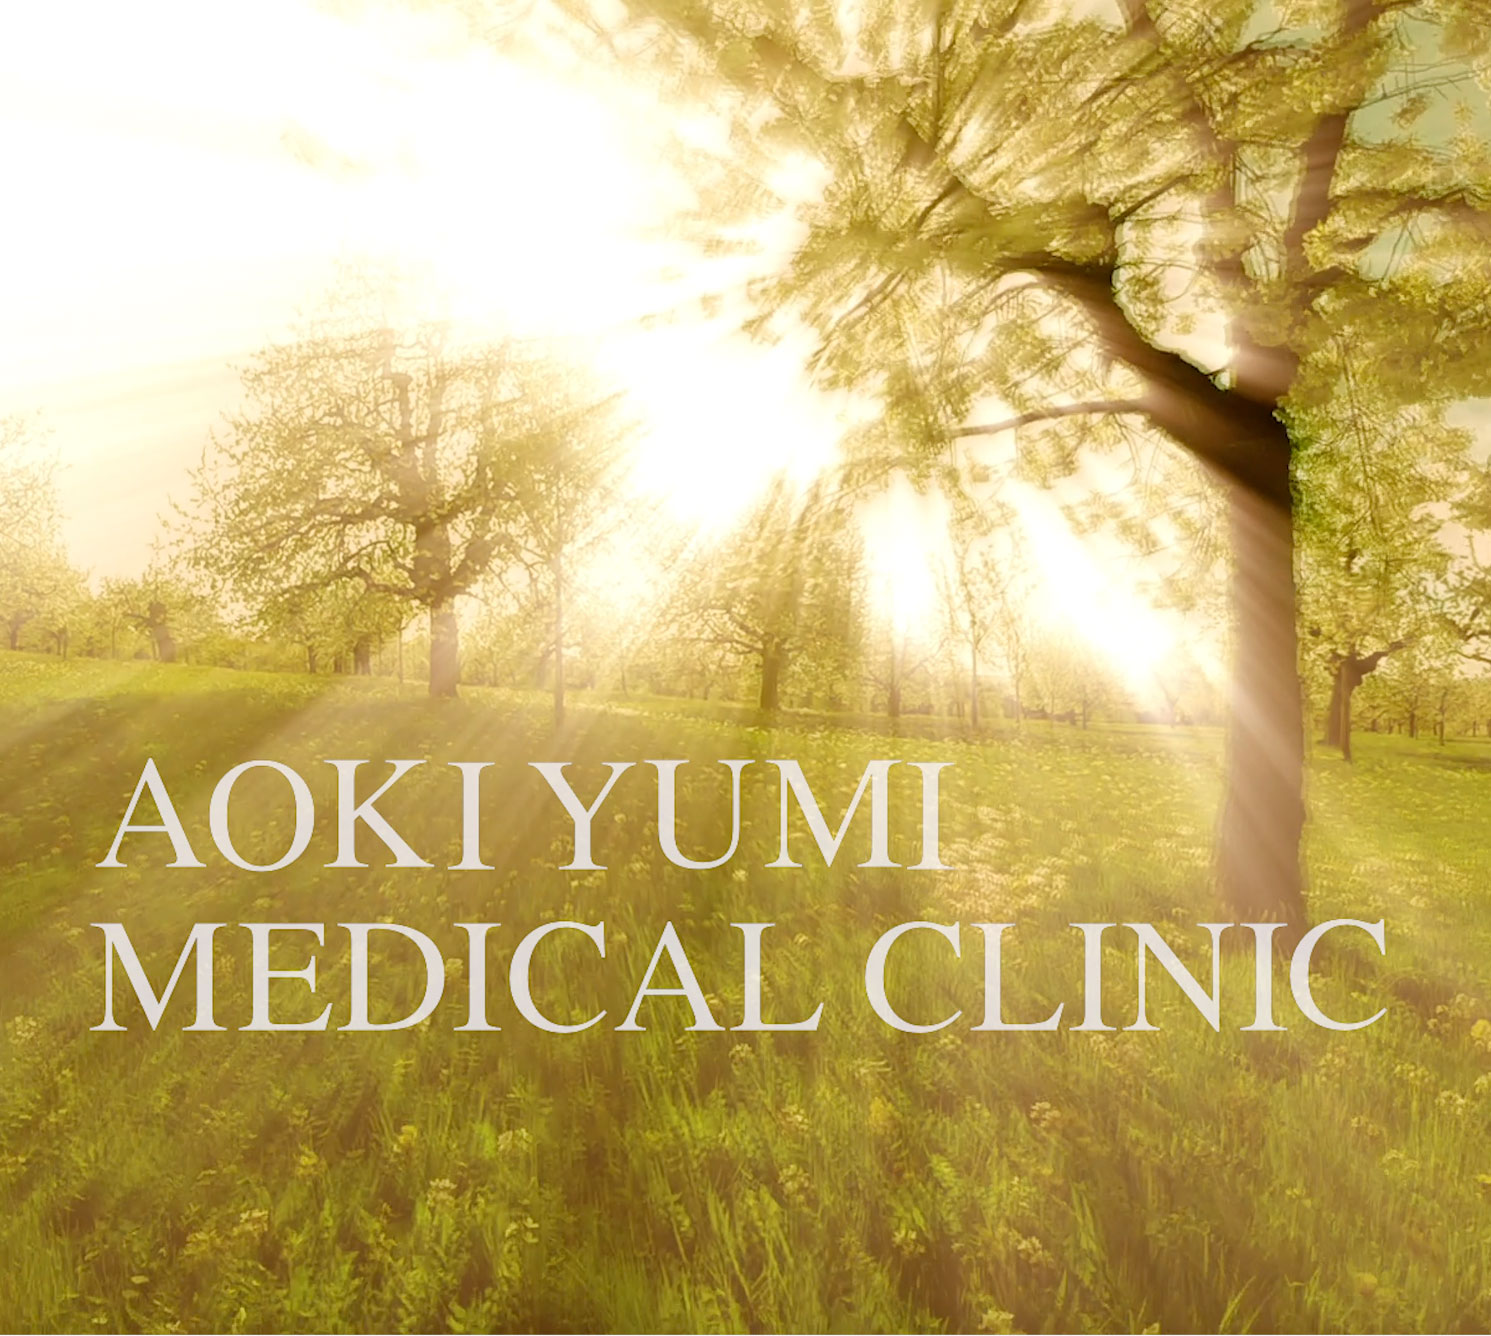 Aoki Yumi Medical Clinic3